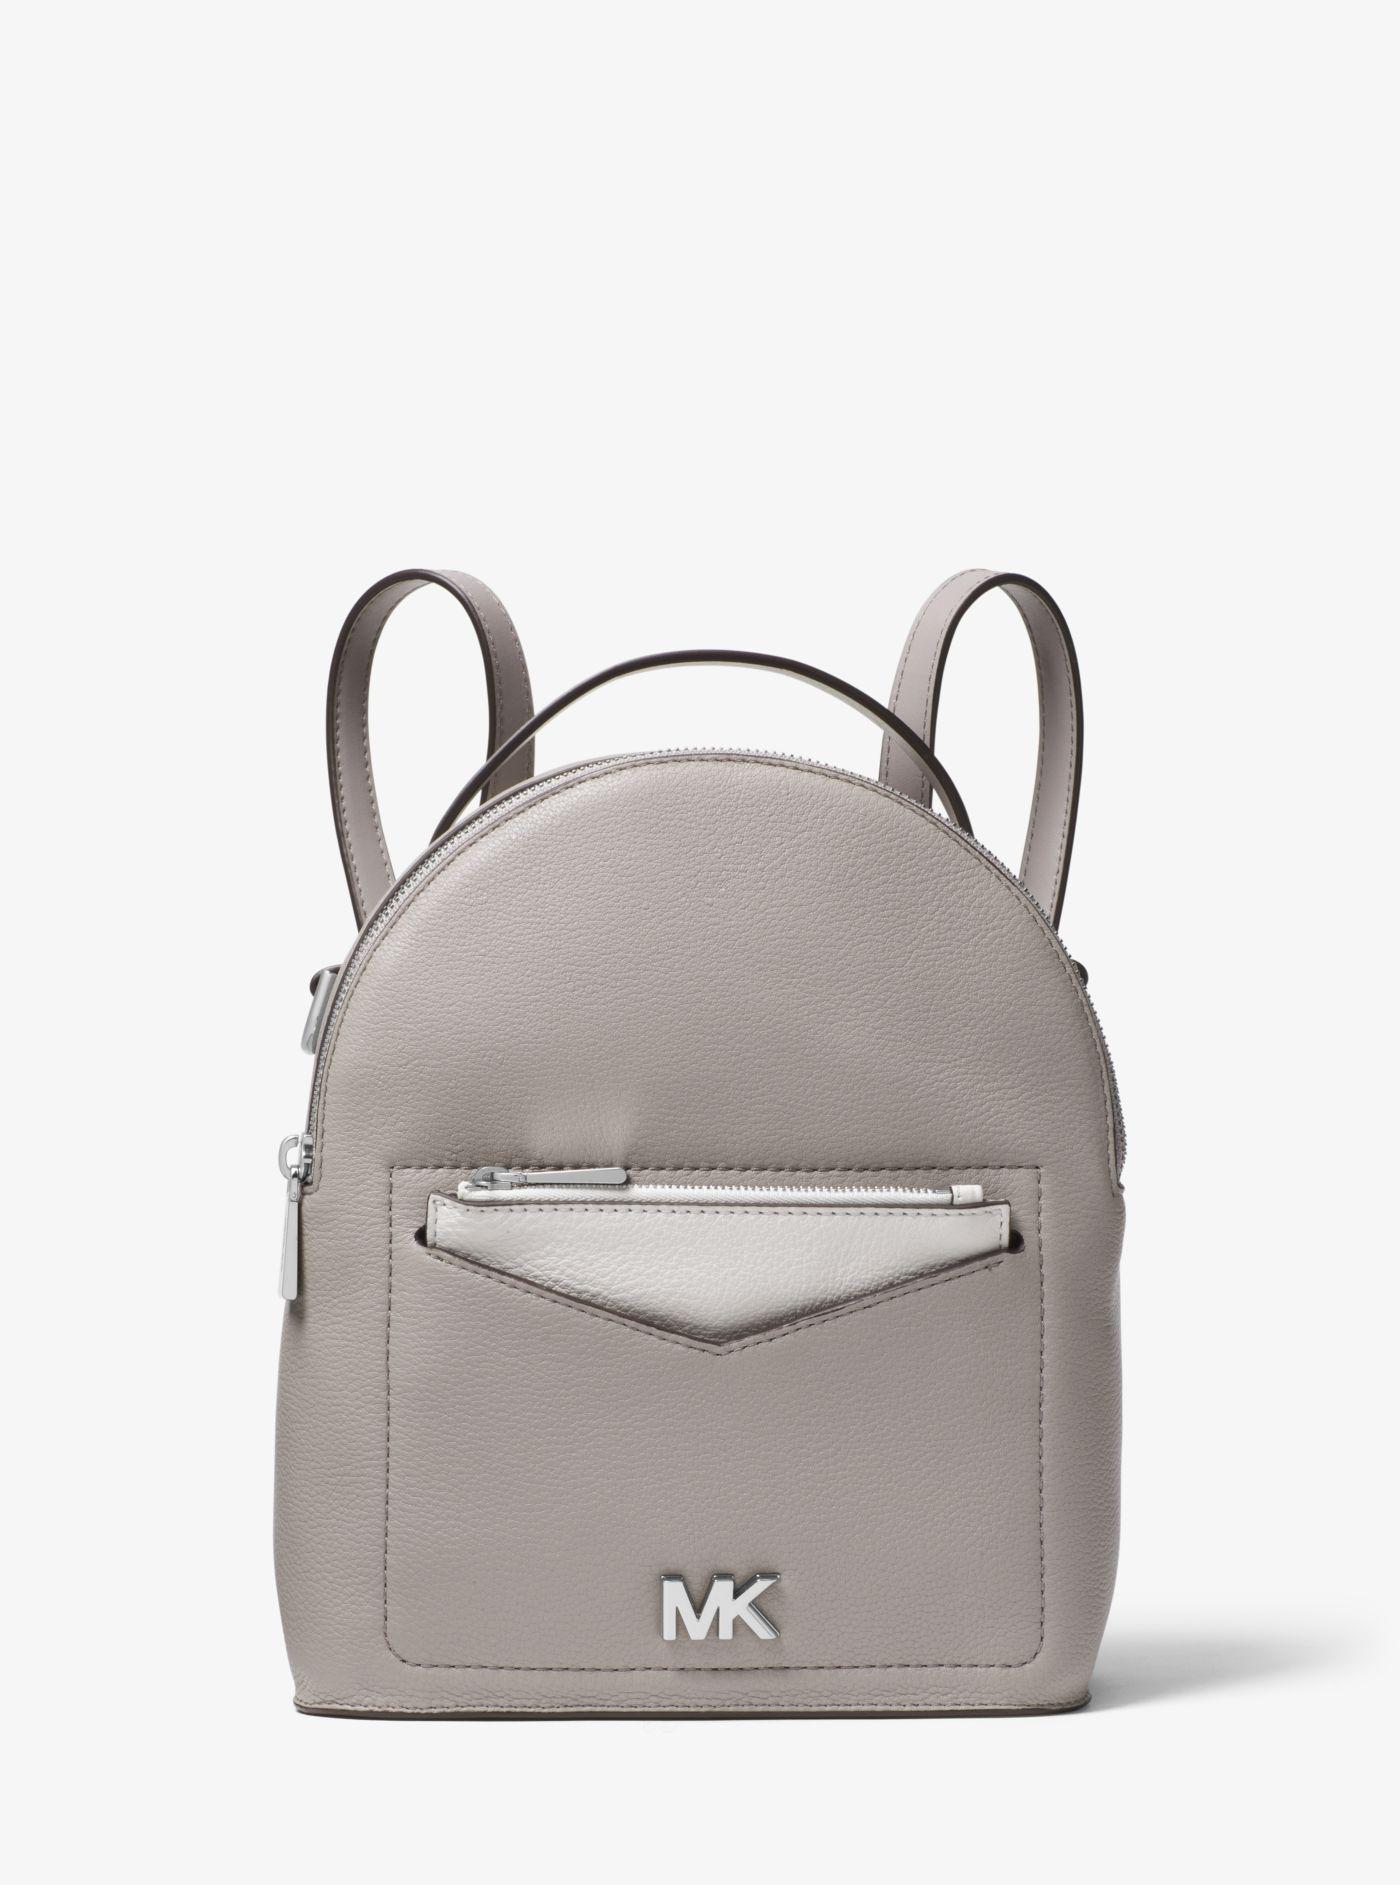 a4a8380b65 Lyst - Michael Kors Jessa Small Pebbled Leather Convertible Backpack ...